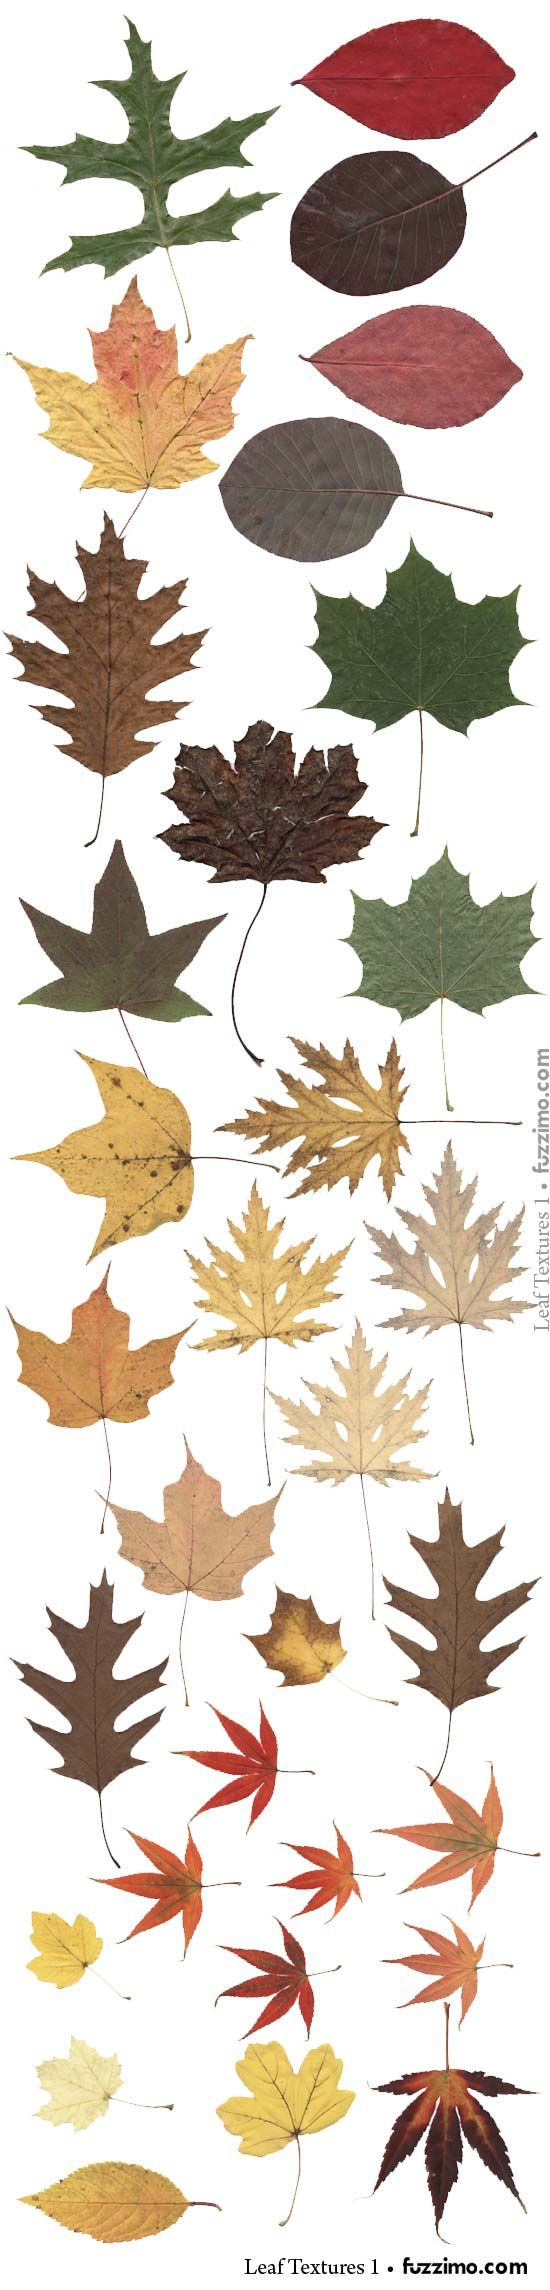 Free leaf vector images from Fuzzimo.comfzm-Leaf-Textures-02.jpg 550×2,290 pixels                                                                                                                                                      More